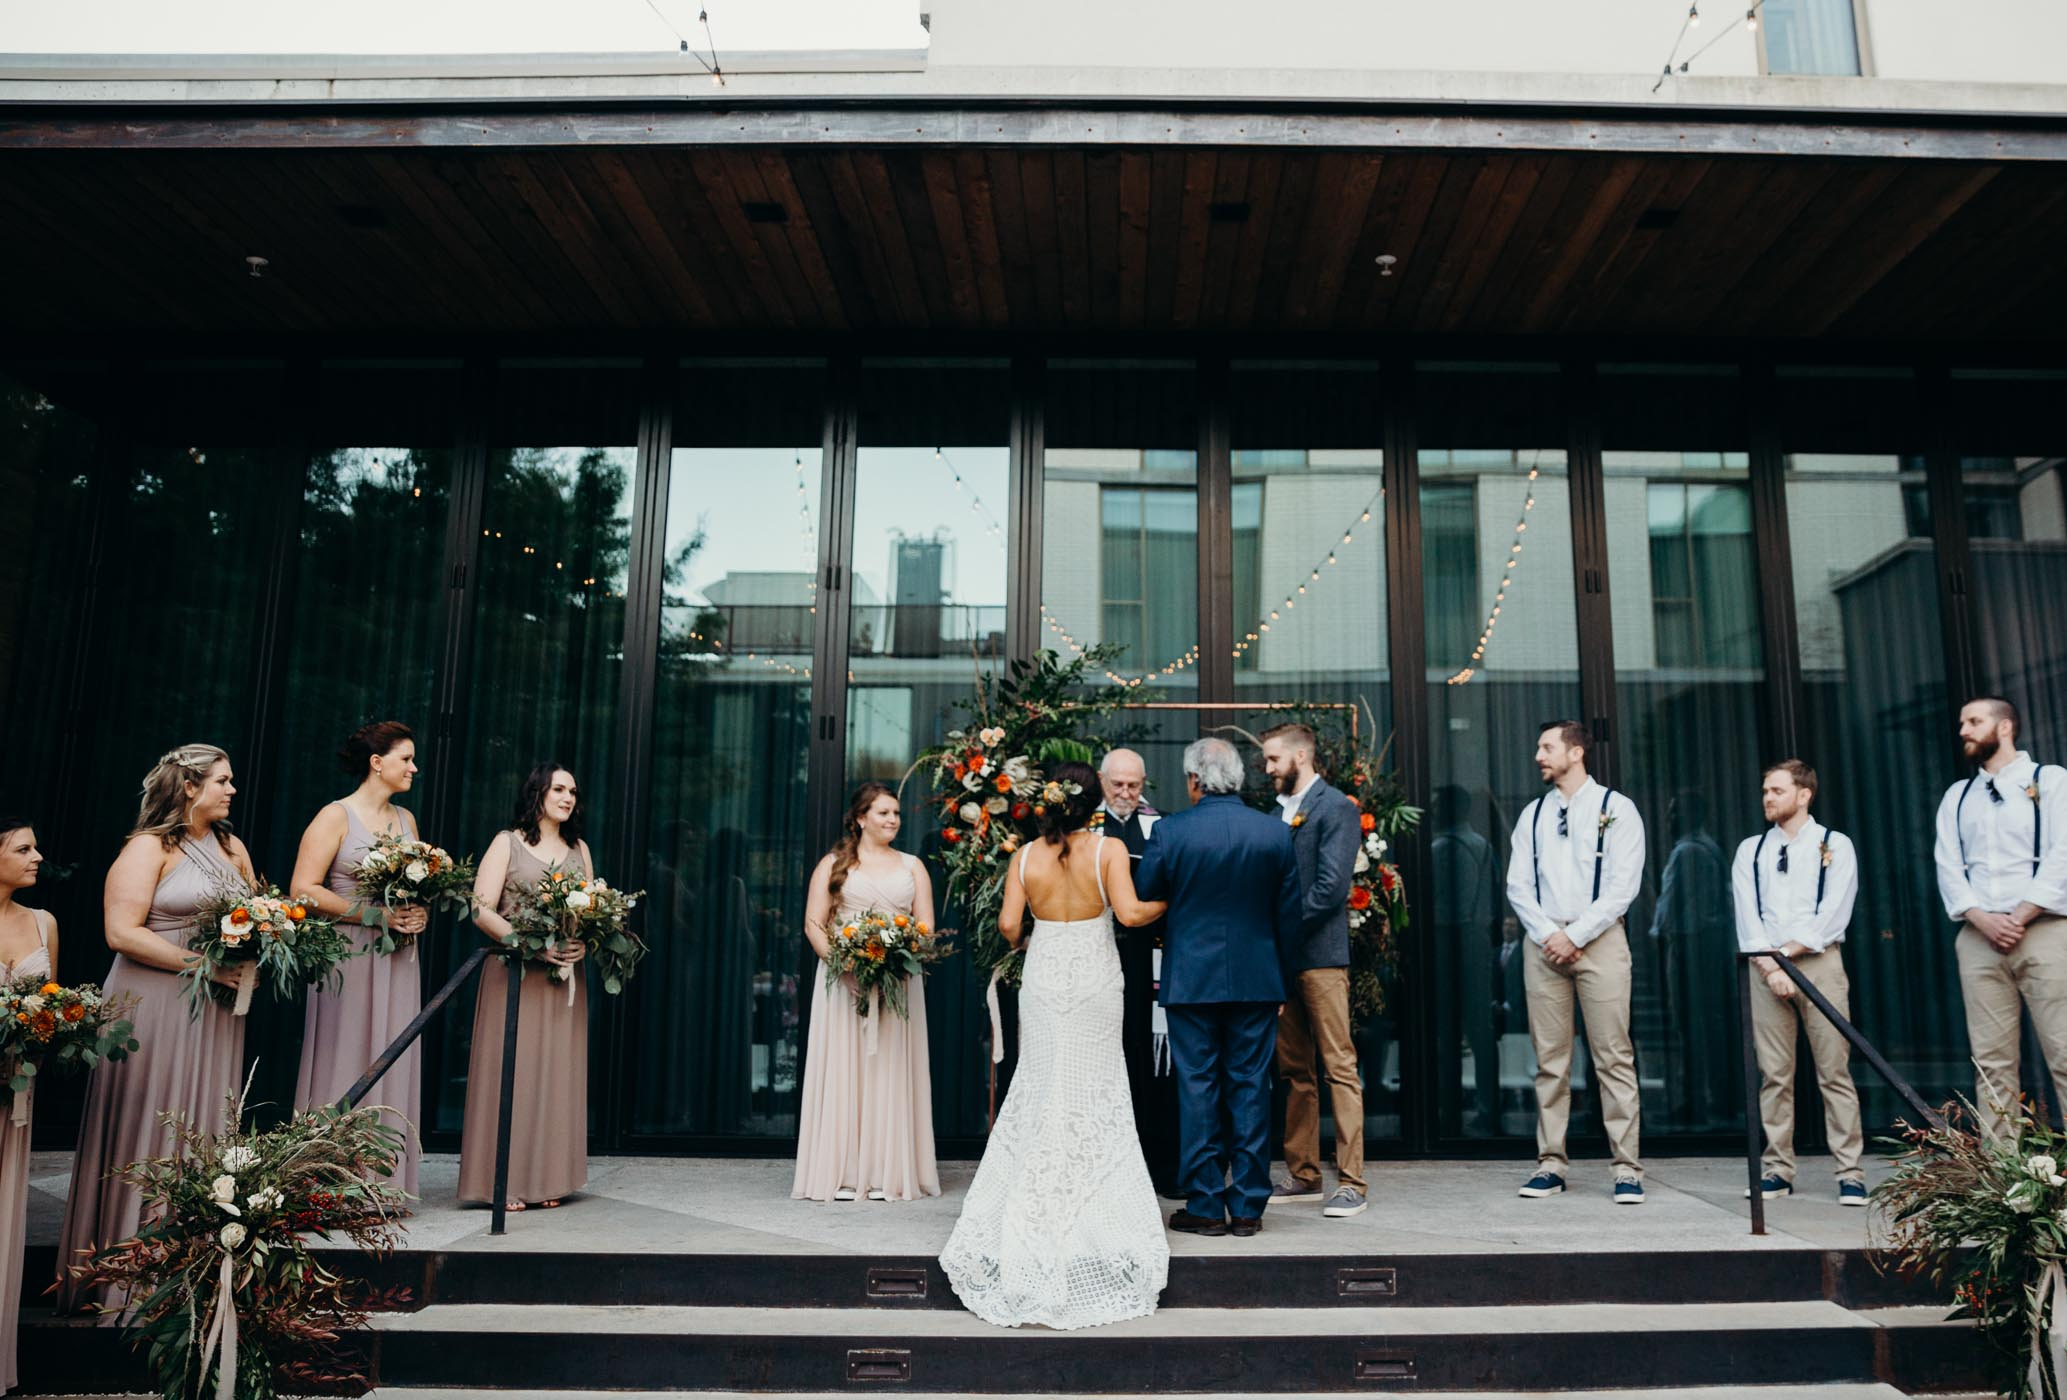 Dad giving off his daughter to her soon to her husband on her wedding day.